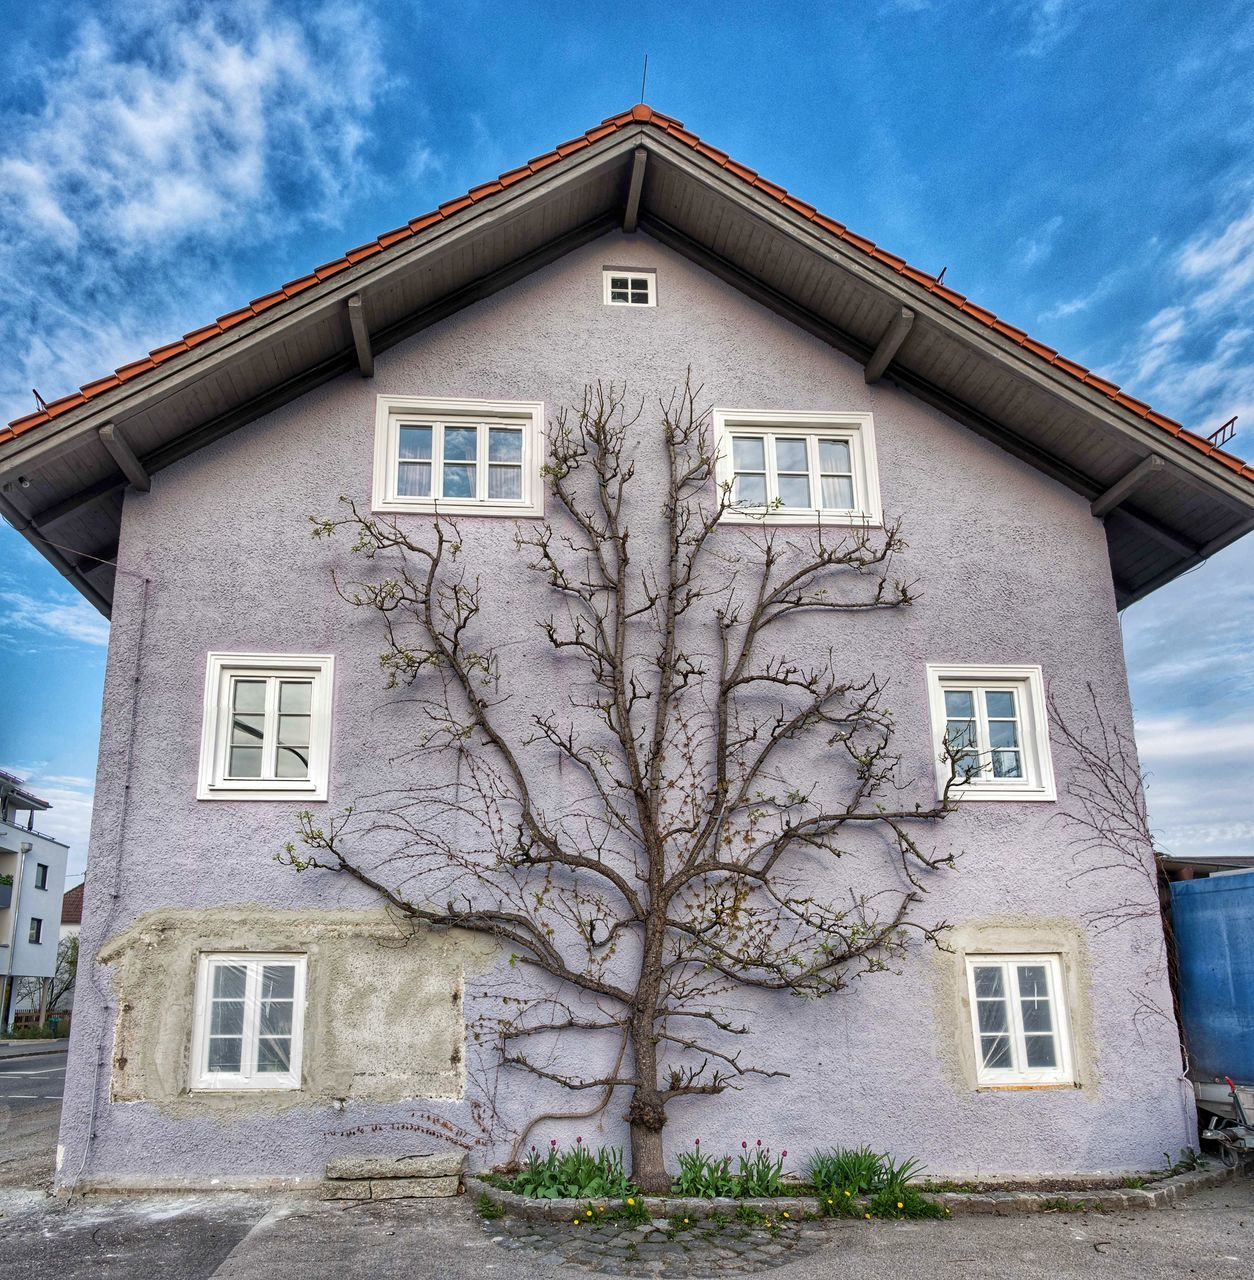 architecture, building exterior, window, built structure, cloud - sky, sky, house, facade, no people, outdoors, day, tree, low angle view, residential building, bare tree, exterior, branch, nature